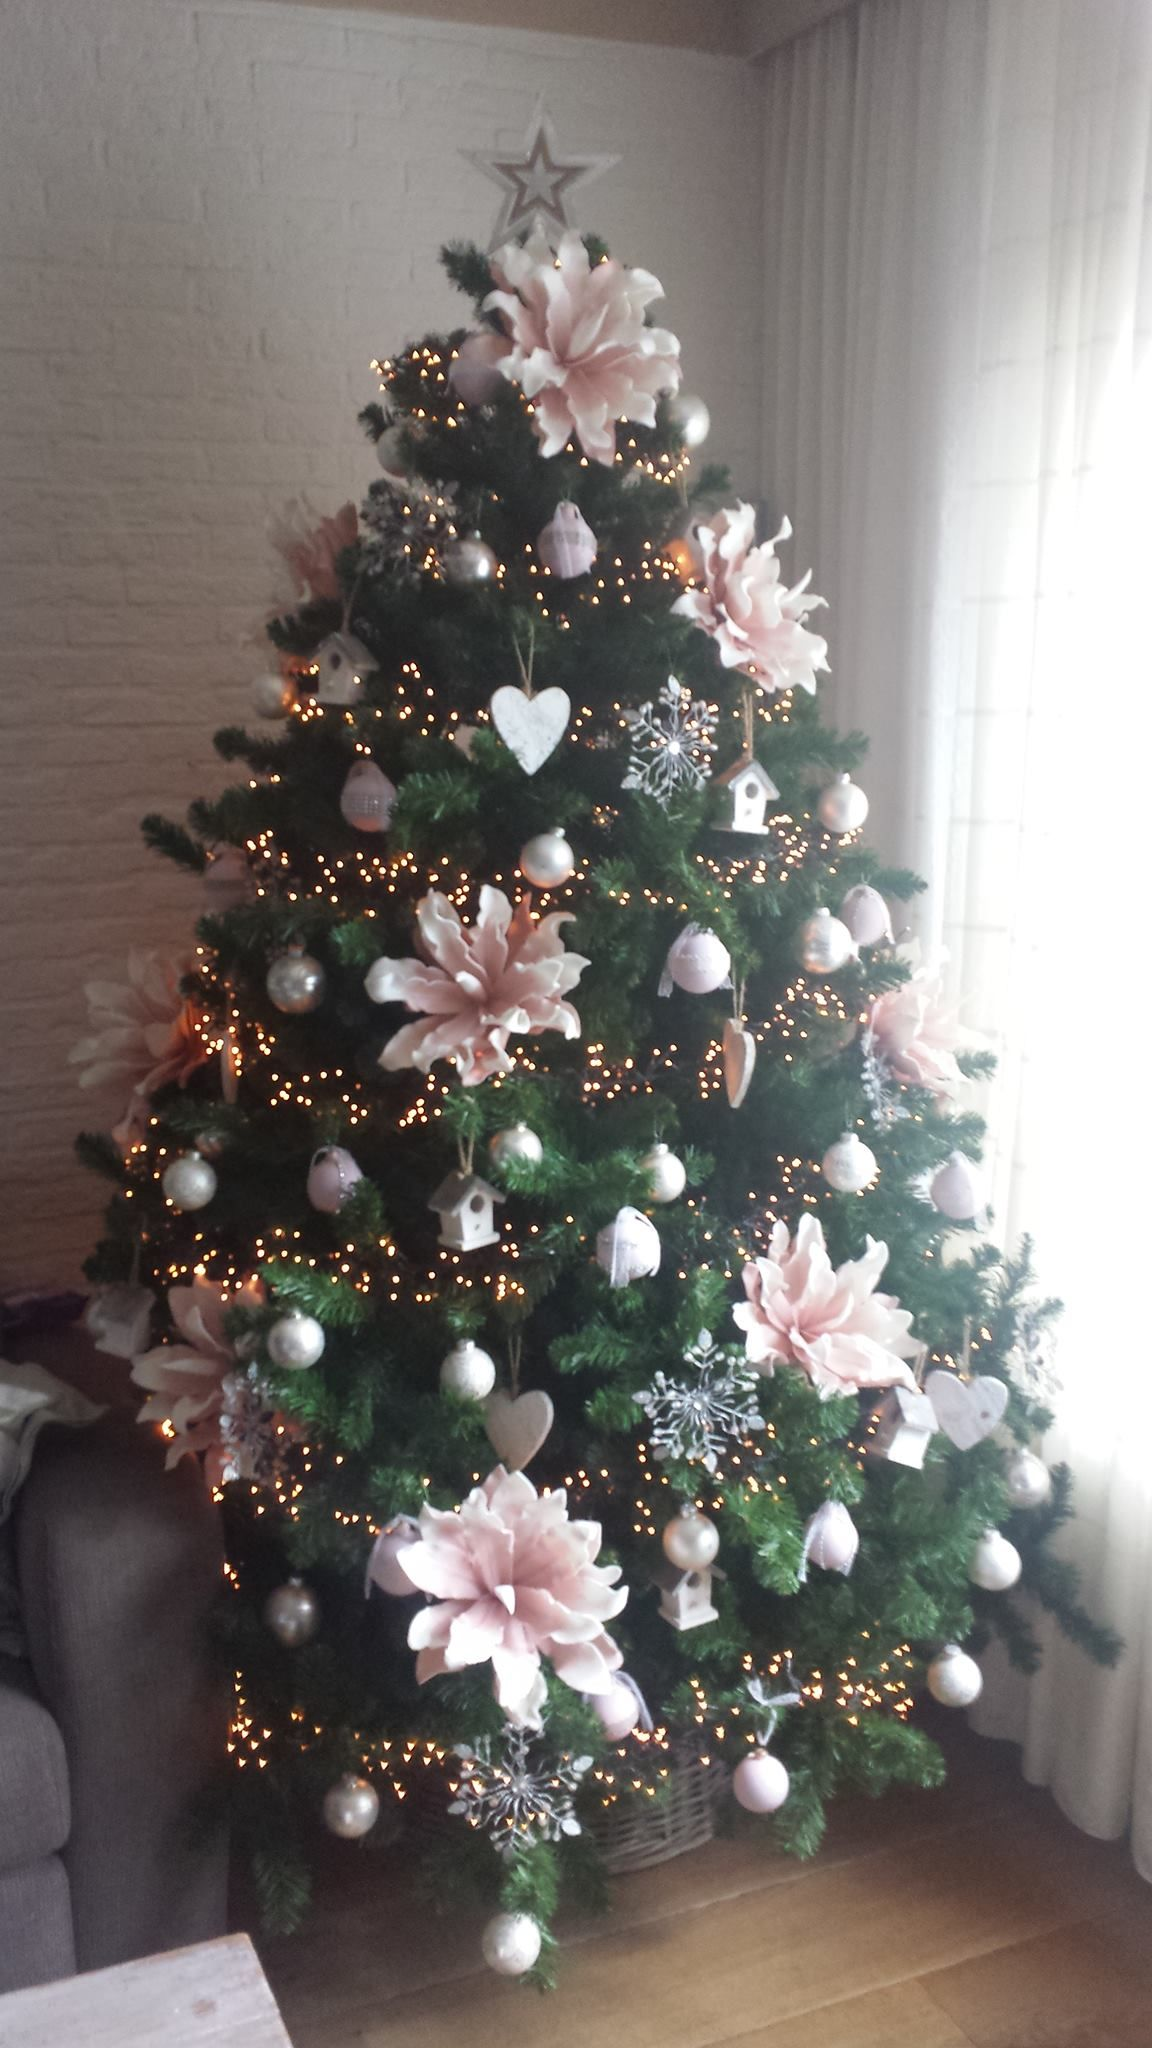 Elegant Christmas Tree Decorated With Big Pink Flowers And Silver Ornaments Elegant Christmas Trees Floral Christmas Tree Christmas Tree Inspiration